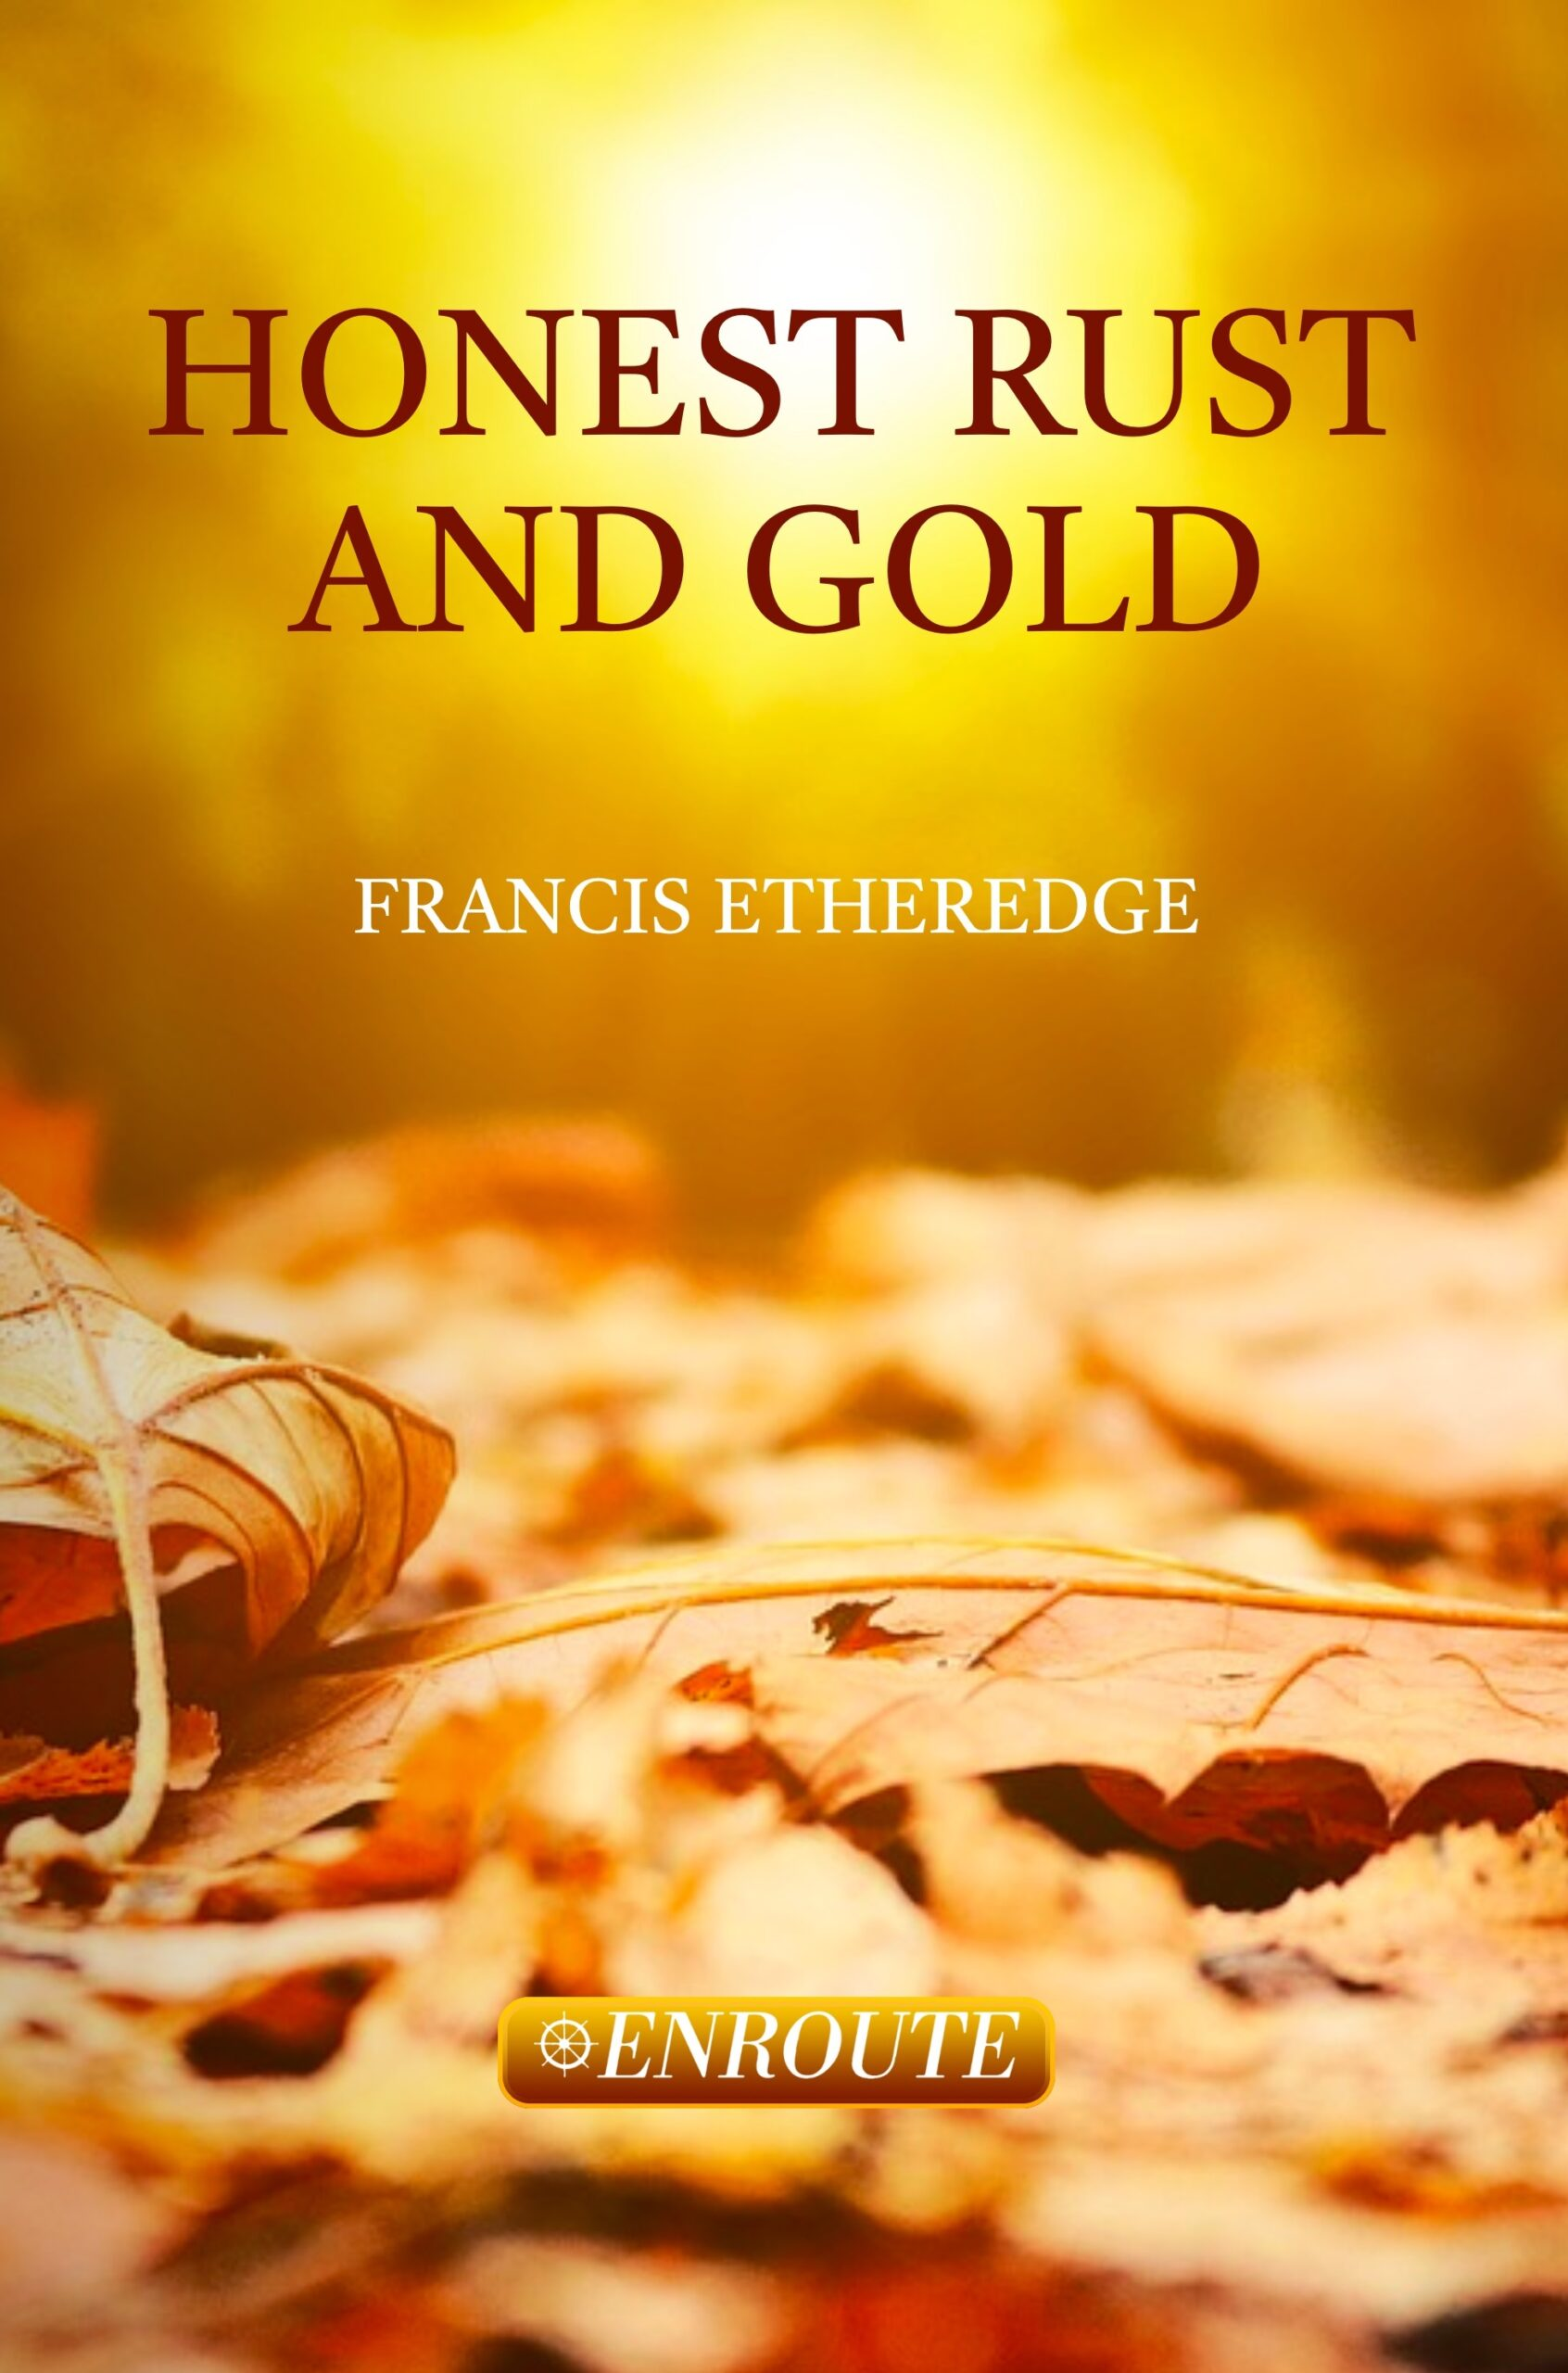 Honest Rust and Gold: A Second Collection of Poetry and Prose